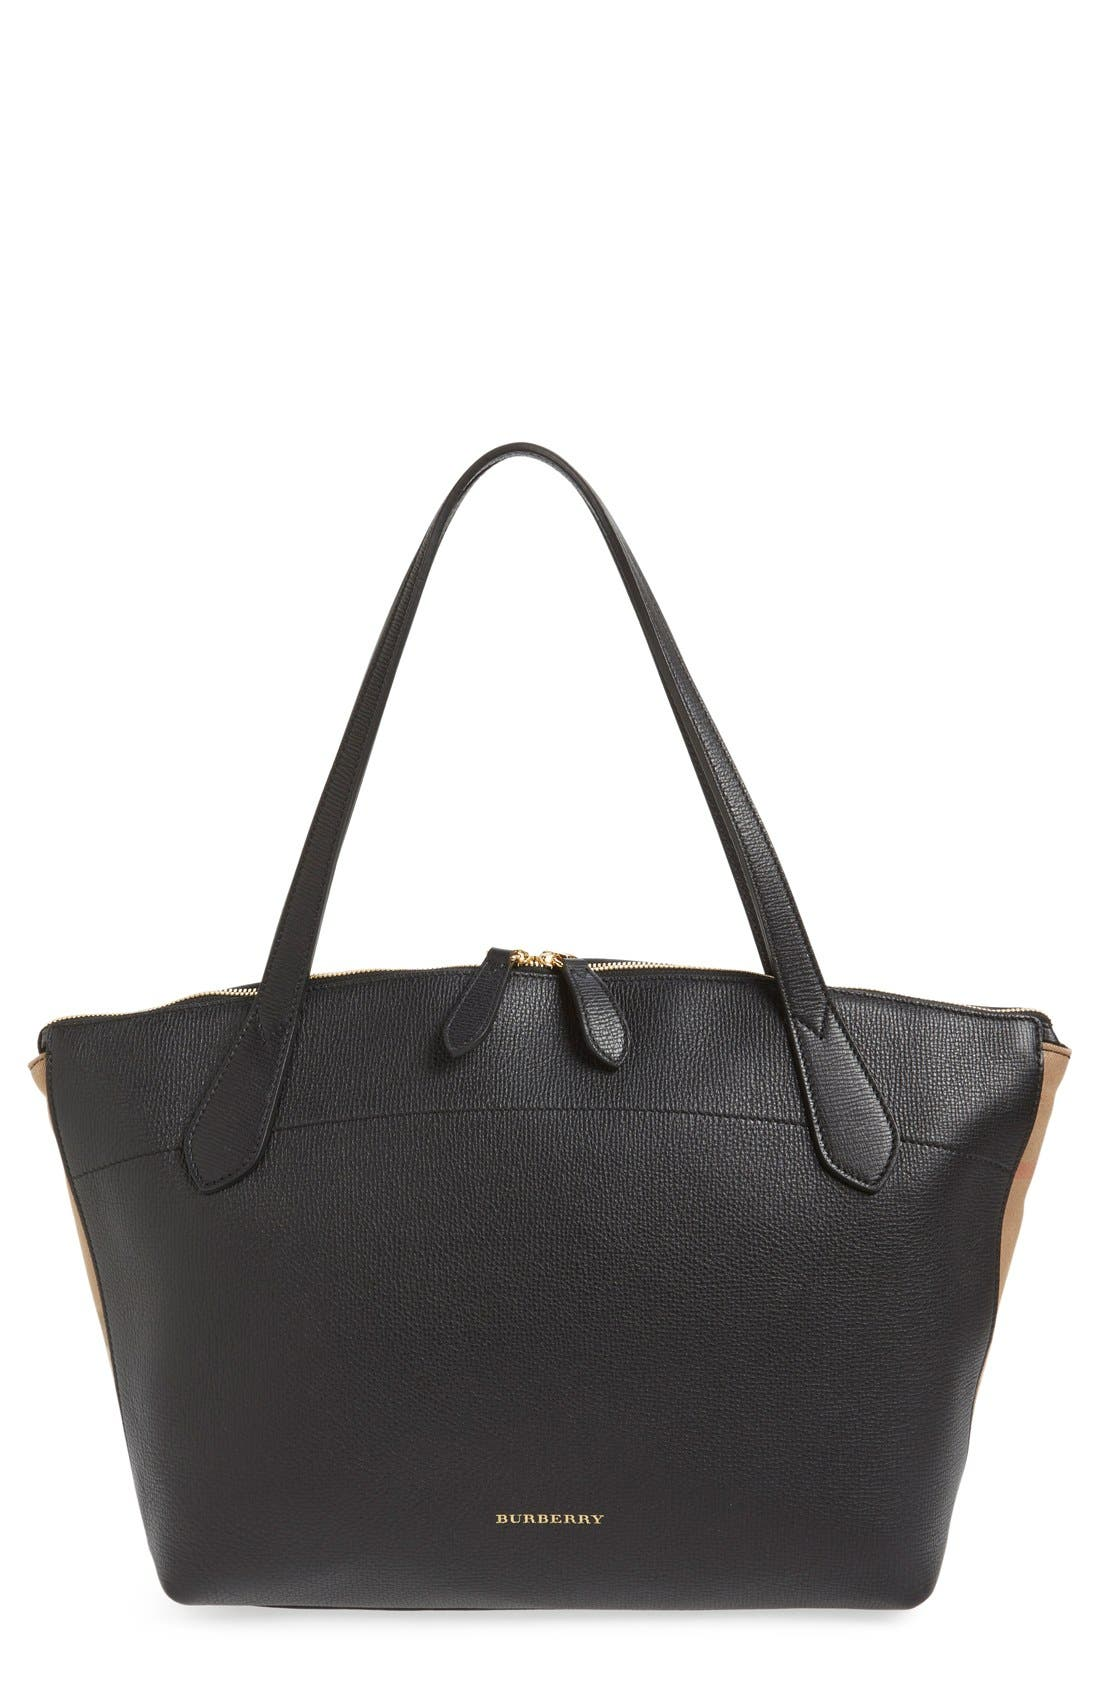 Welburn Check Leather Tote,                         Main,                         color, Black